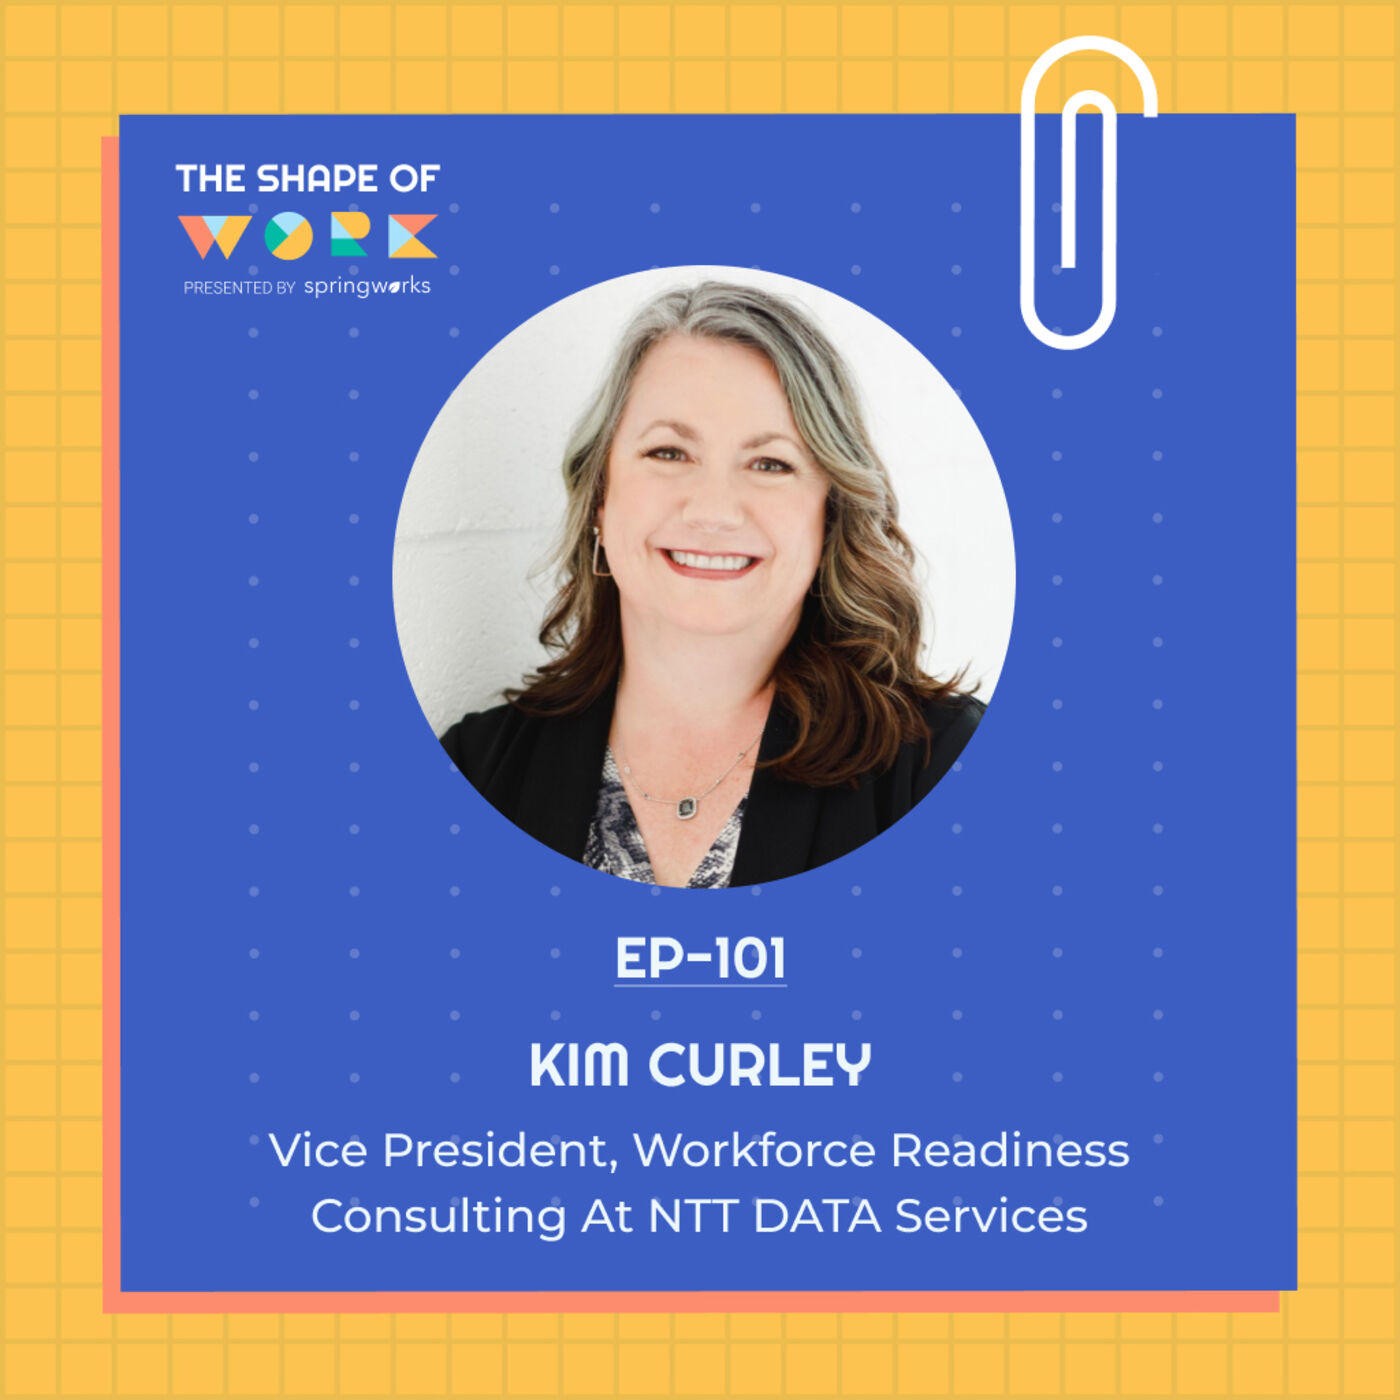 #101 'The Great Resignation' and 'The Great Experiment' - Kim Curley on the renewed focus on organization culture, and the human side of business